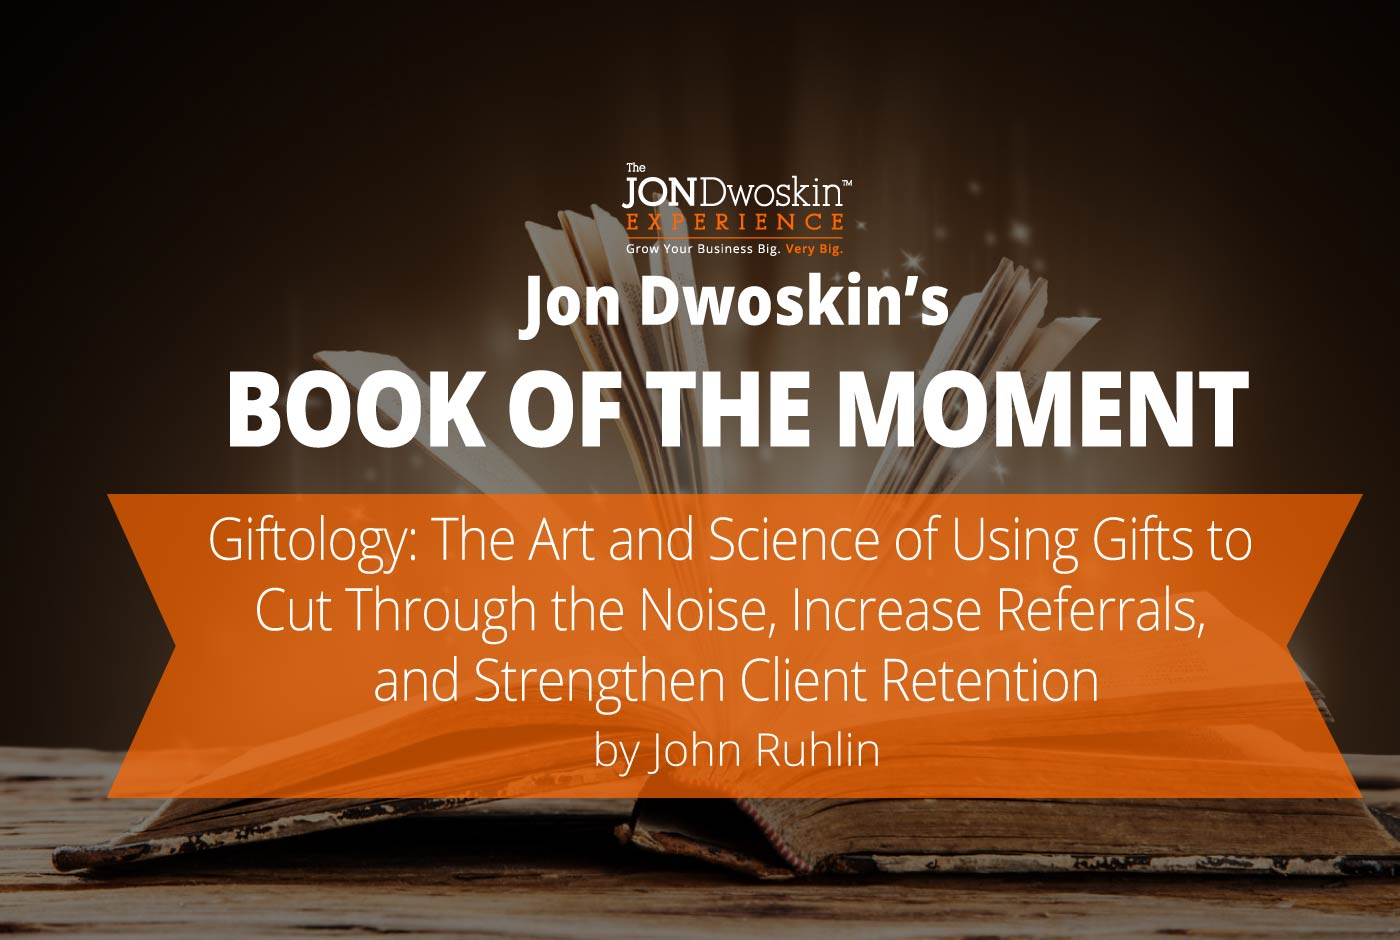 Jon Dwoskin's Book of the Month